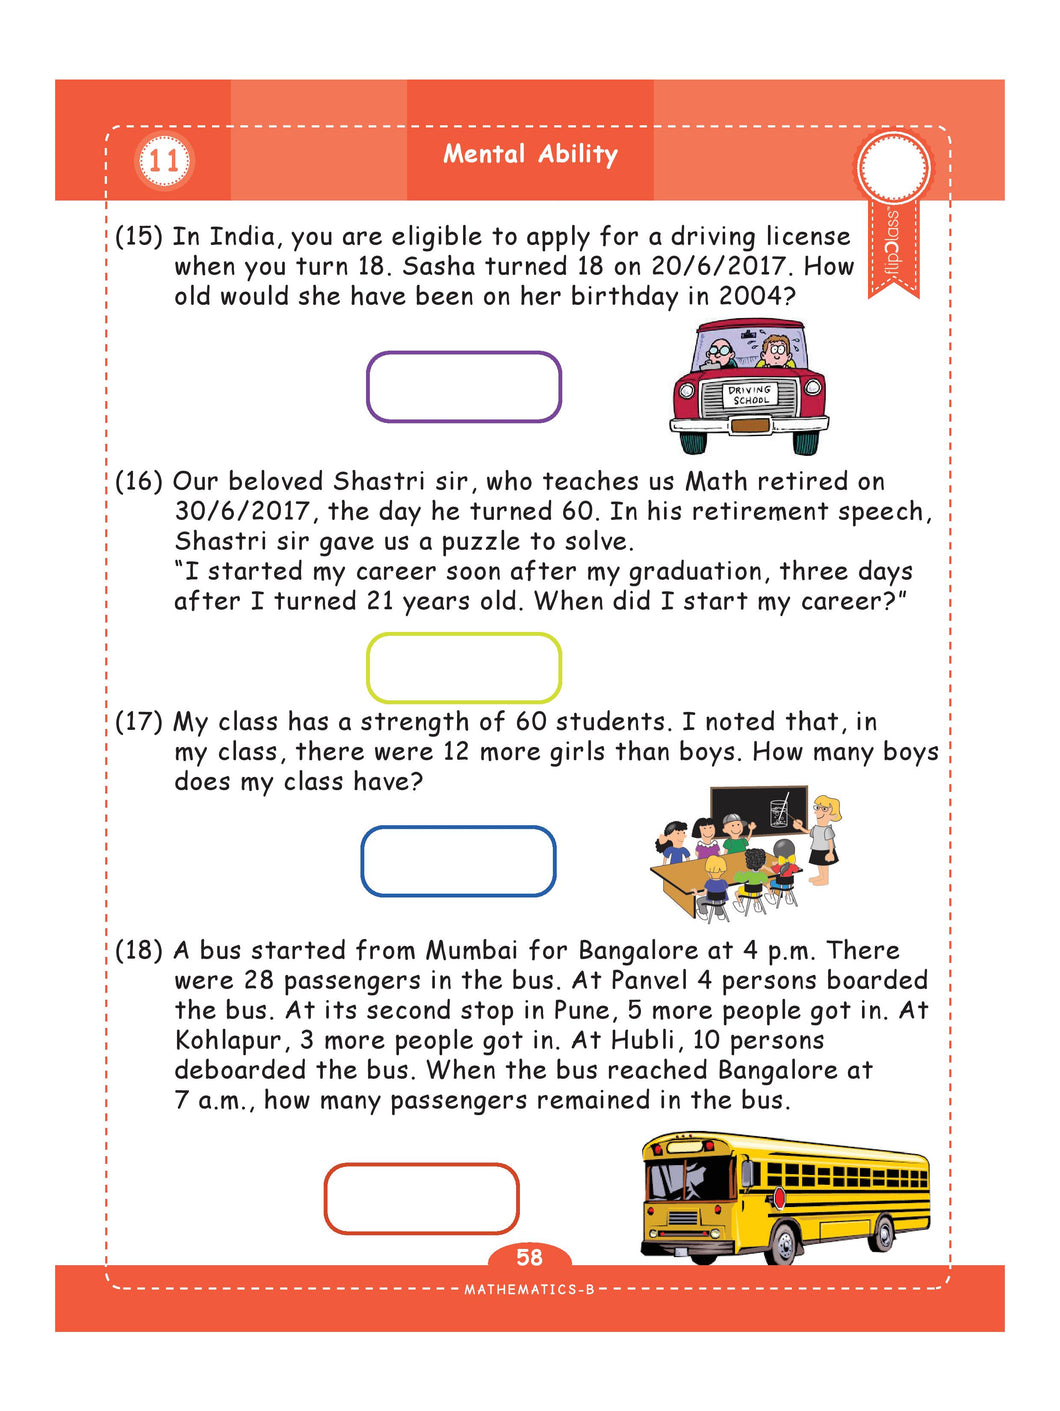 genius kids worksheets for class 4 4th grade math english science. Black Bedroom Furniture Sets. Home Design Ideas